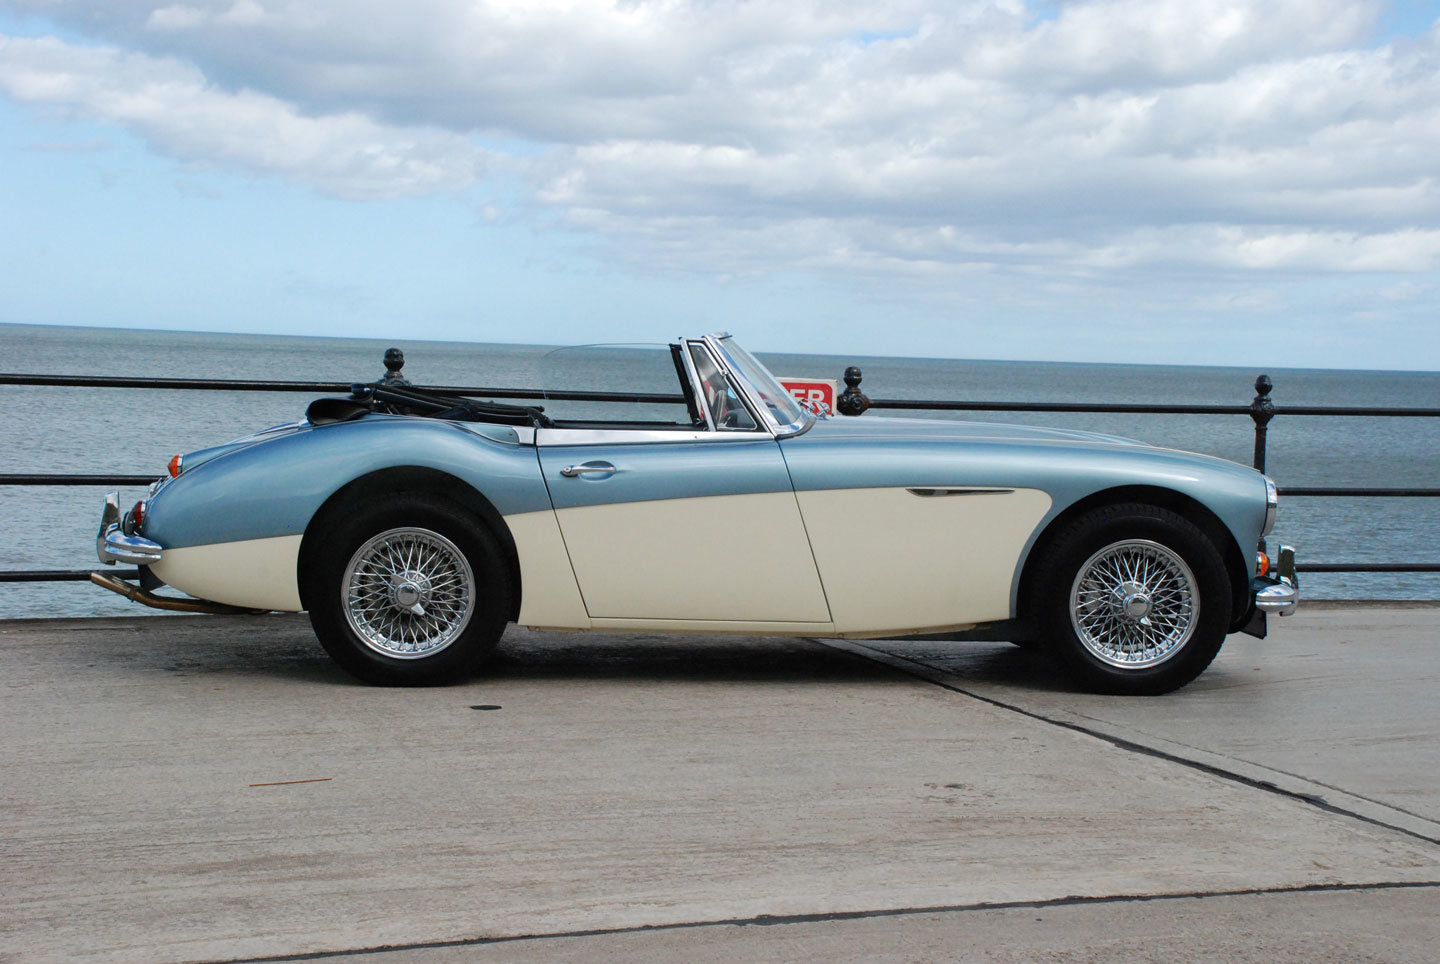 1966 Austin Healey 3000 MK 3 BJ8 phase 2 For Sale (picture 2 of 10)